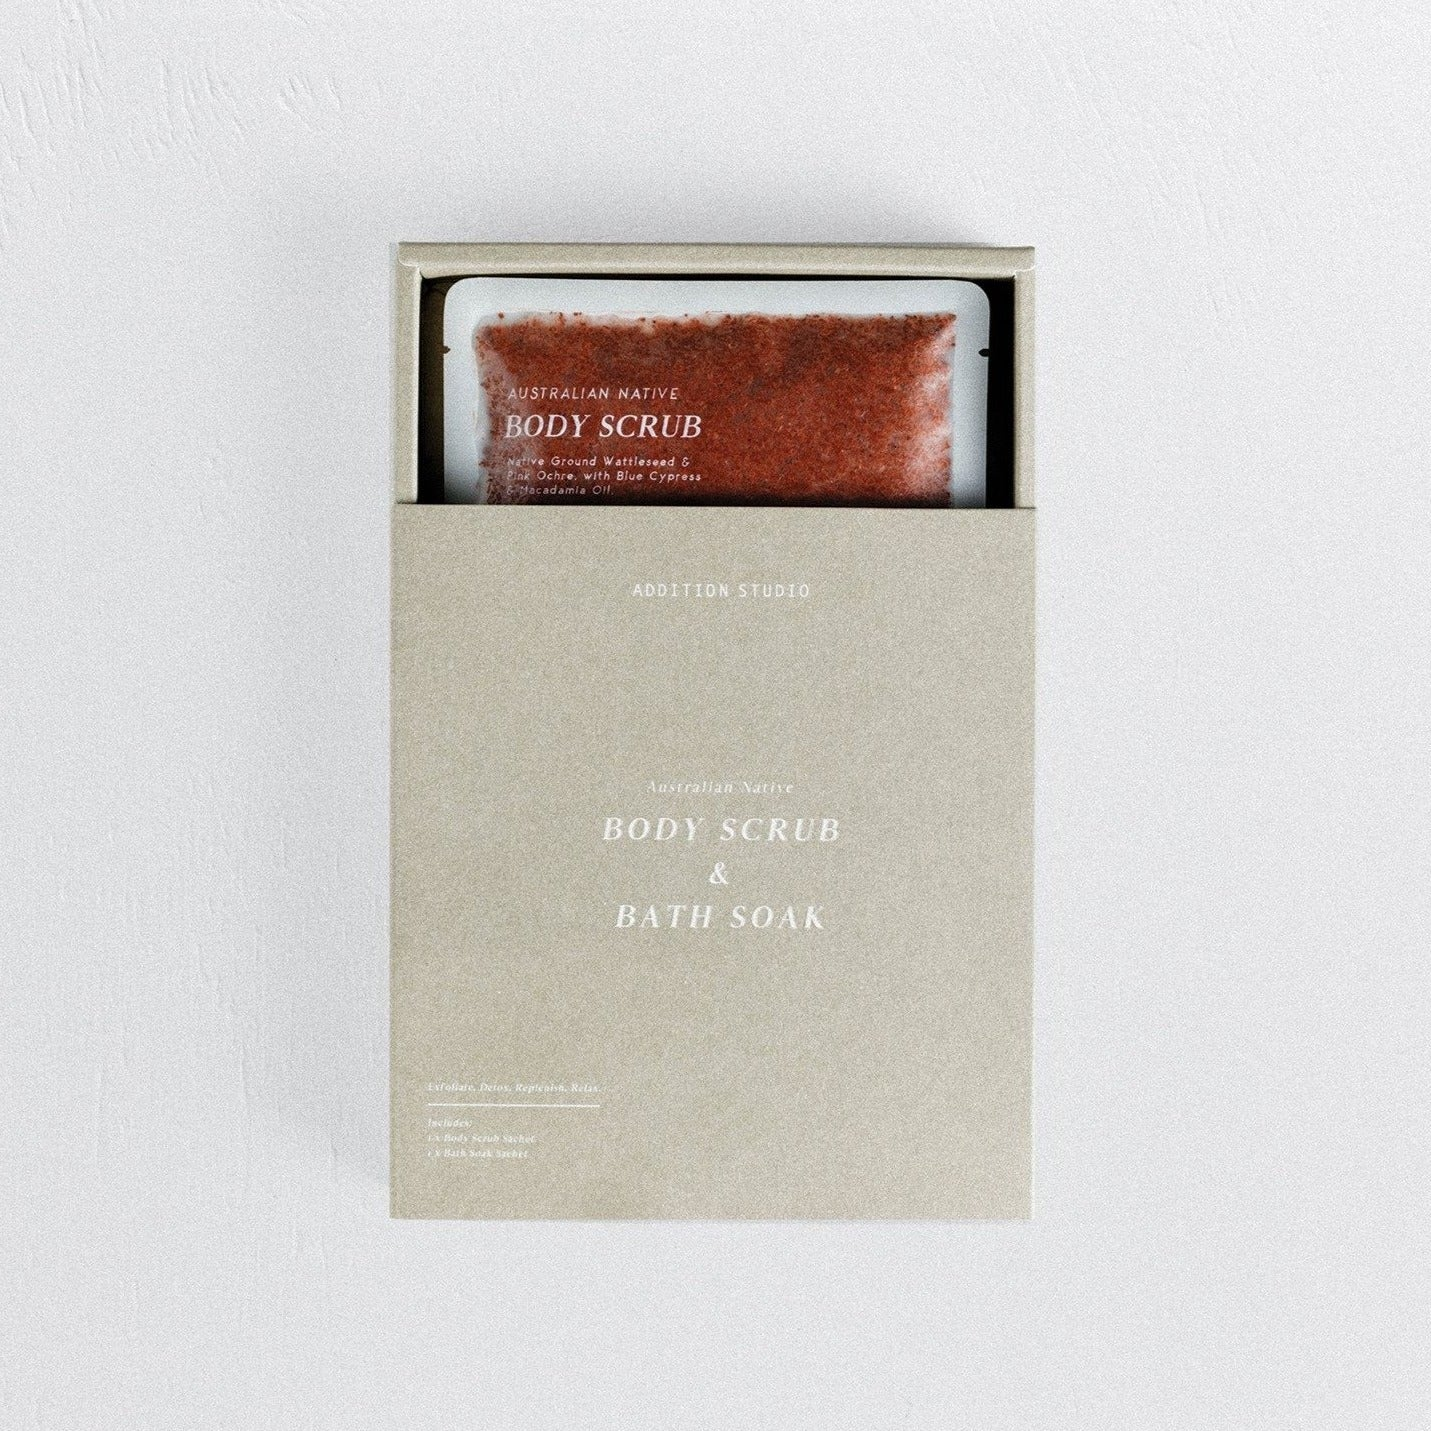 In A Perfect World I. A. P. W. Addition Studio Ritual Lifestyle Bath Soap Australian Native Body Scrub Bath Soak